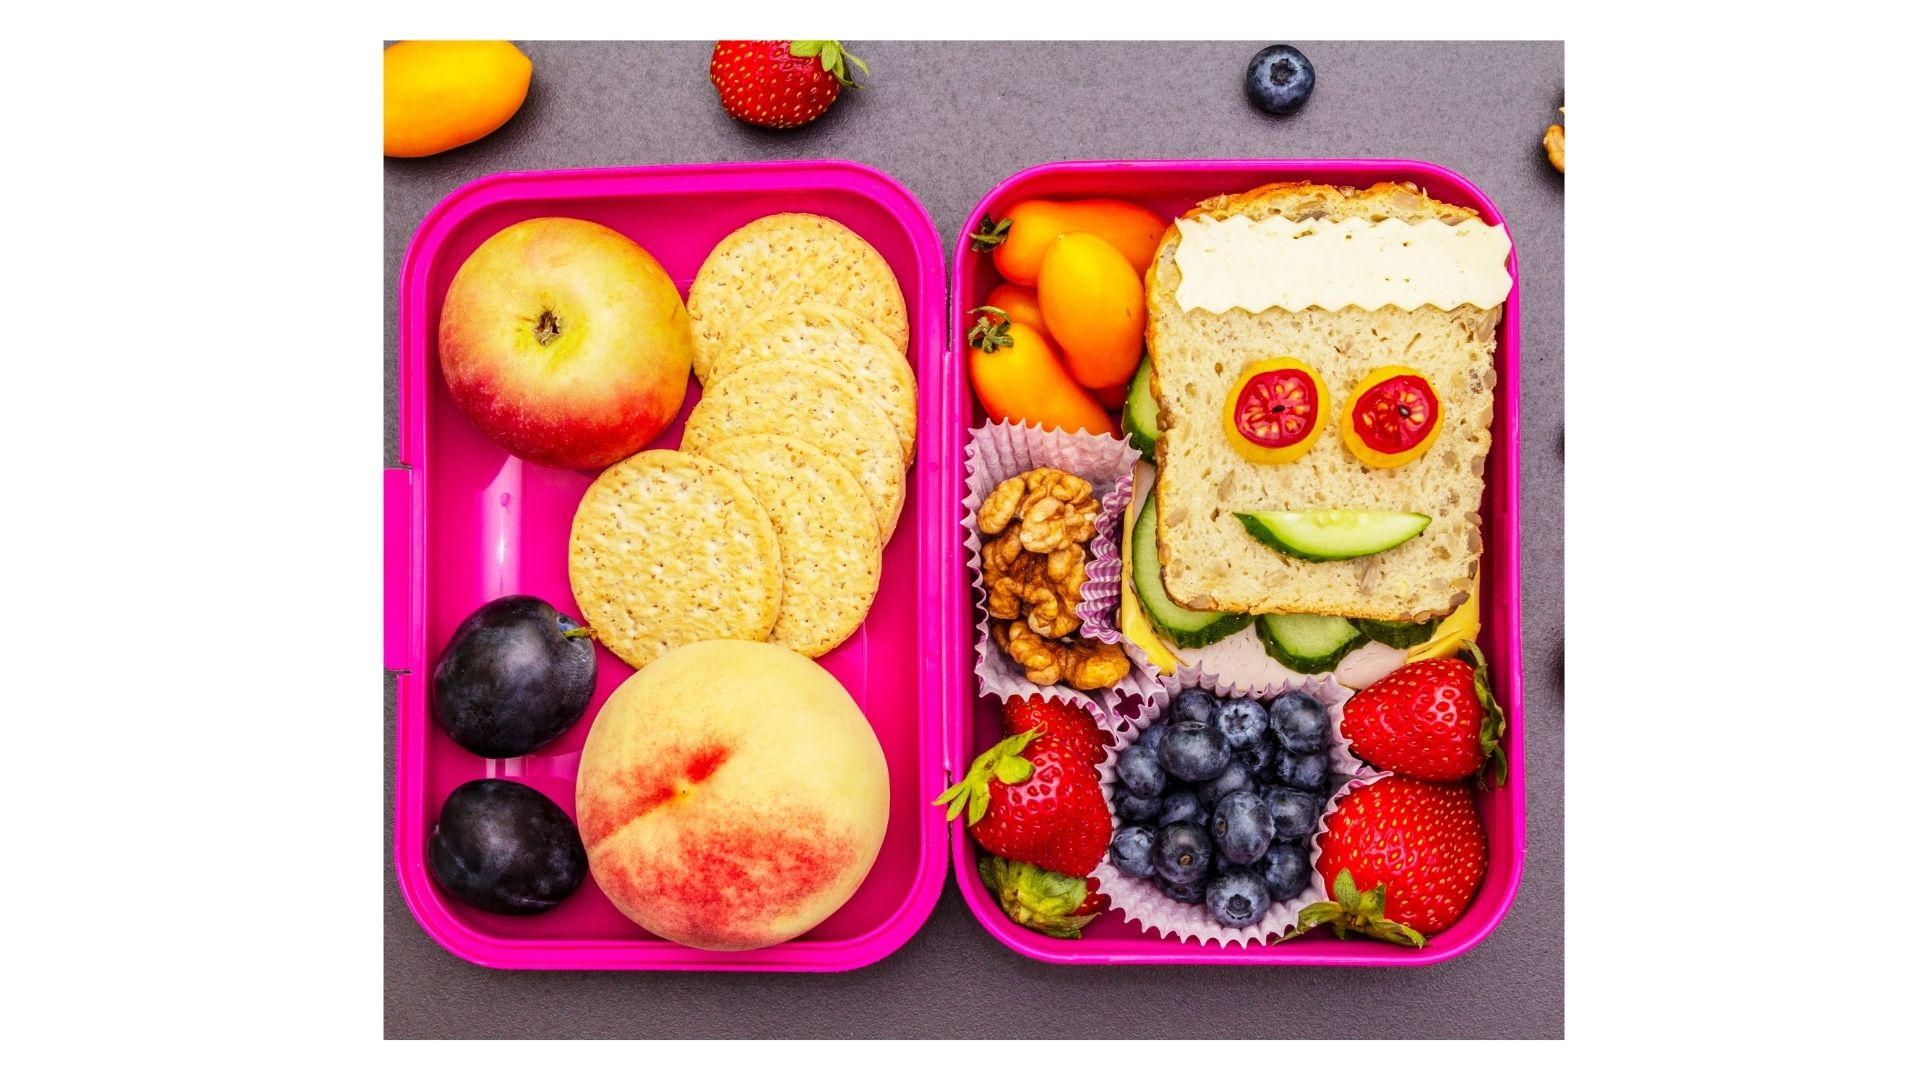 Lunch box packed with a healthy lunch